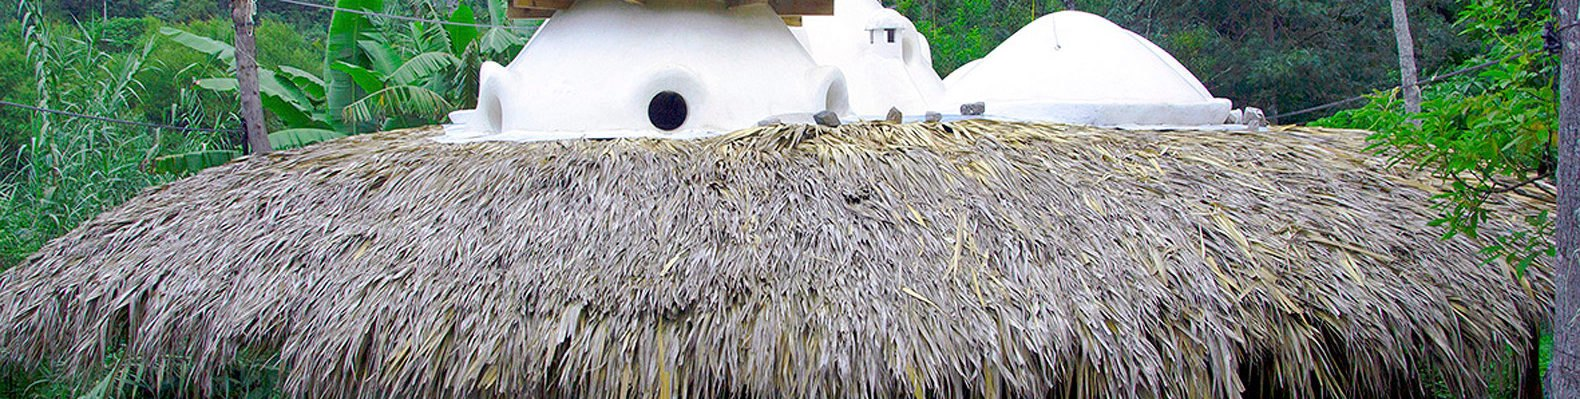 hut with thatched roof and white domes above the roof